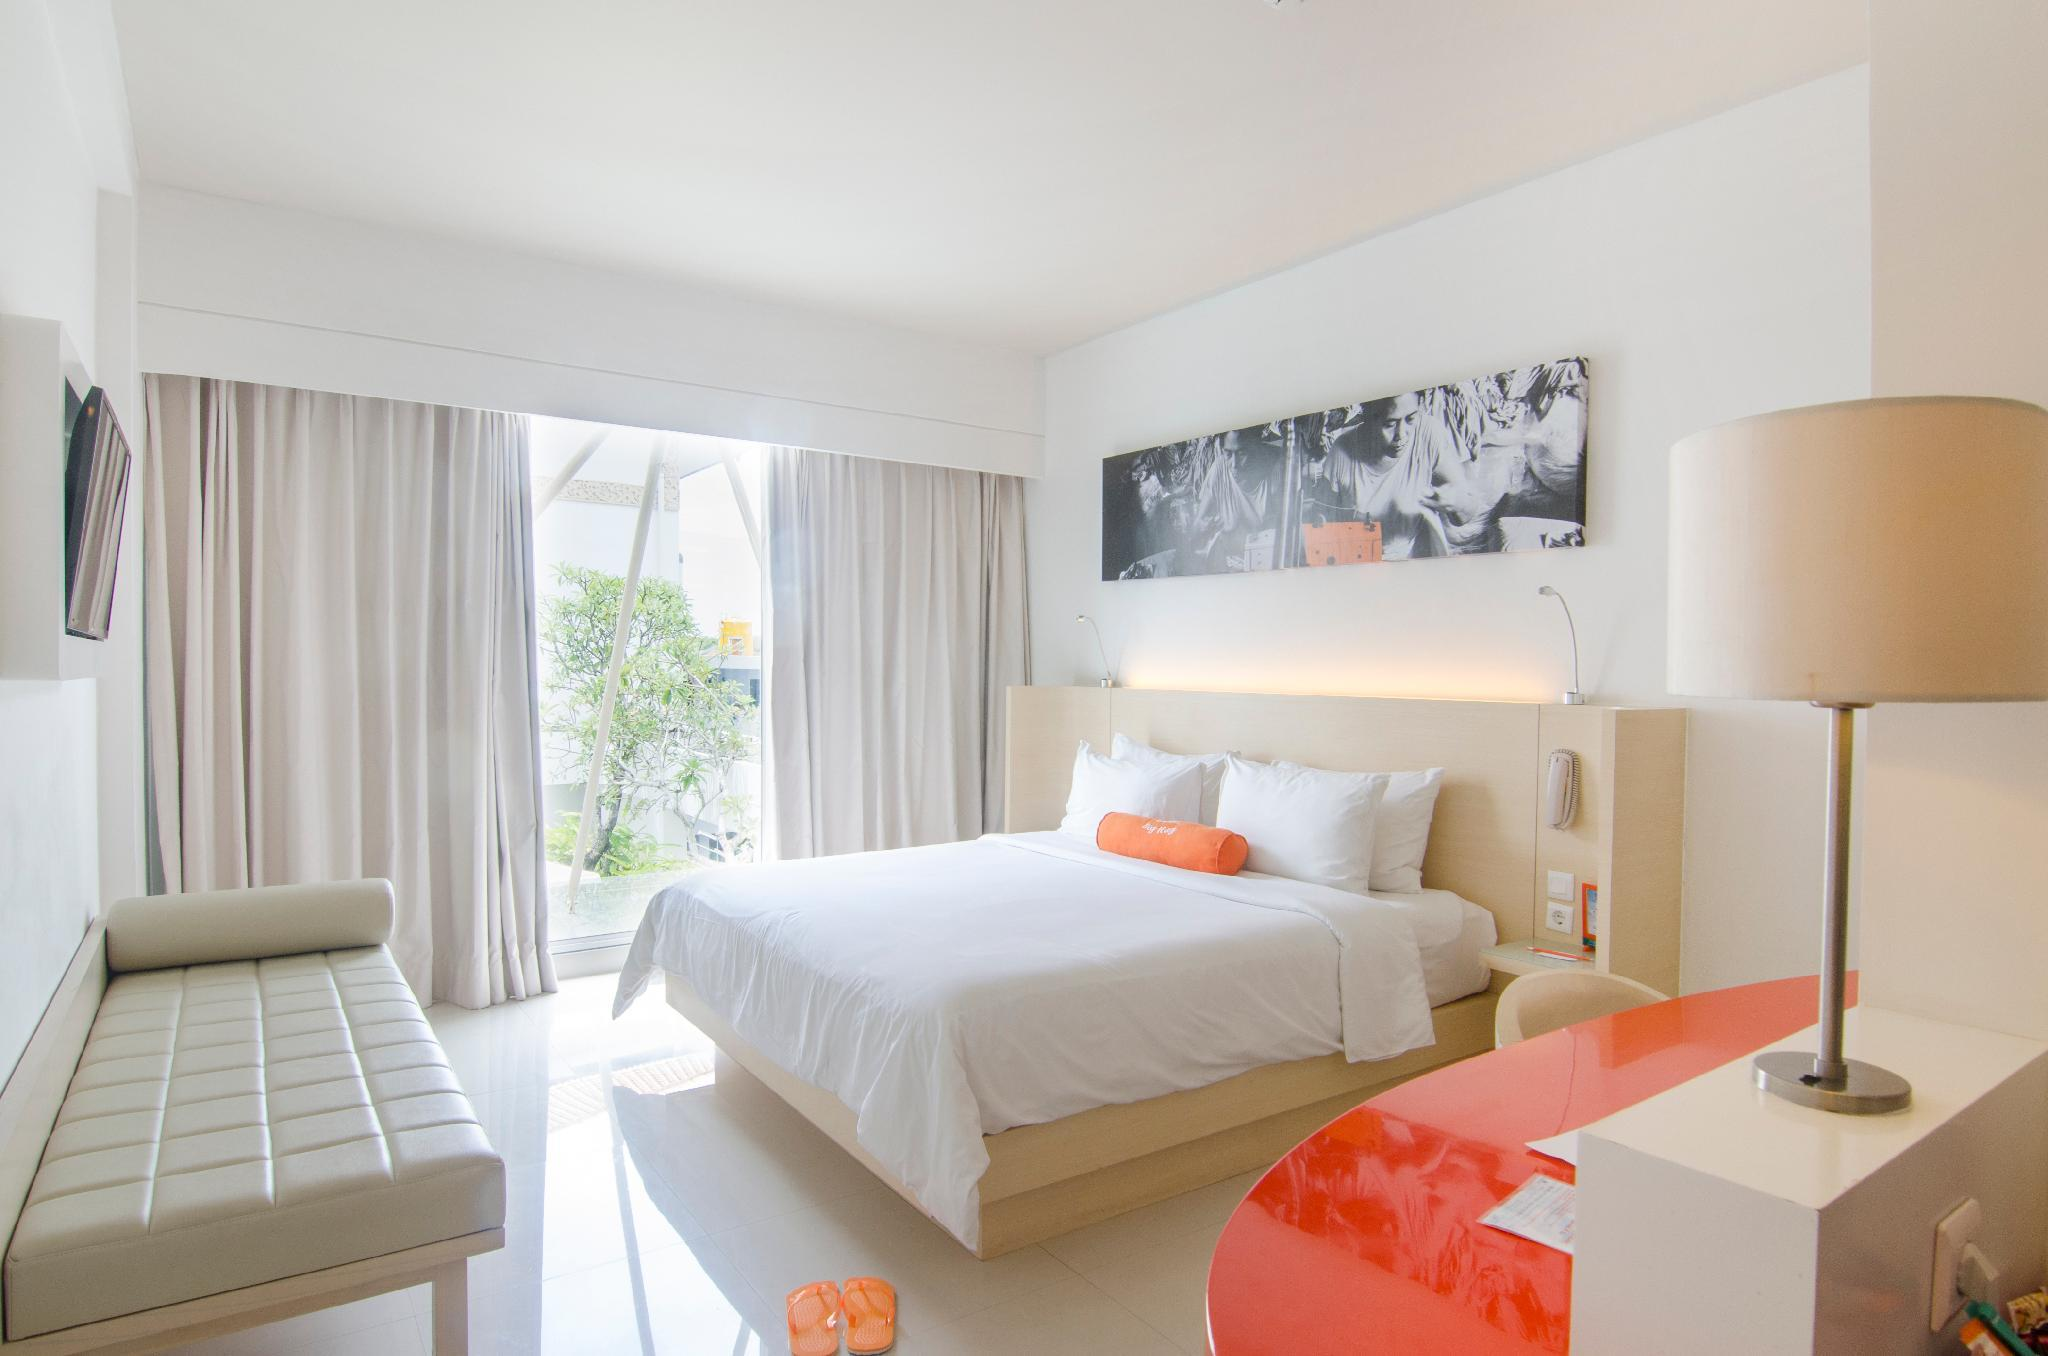 Harris Hotel Conventions Denpasar Bali In Indonesia Room